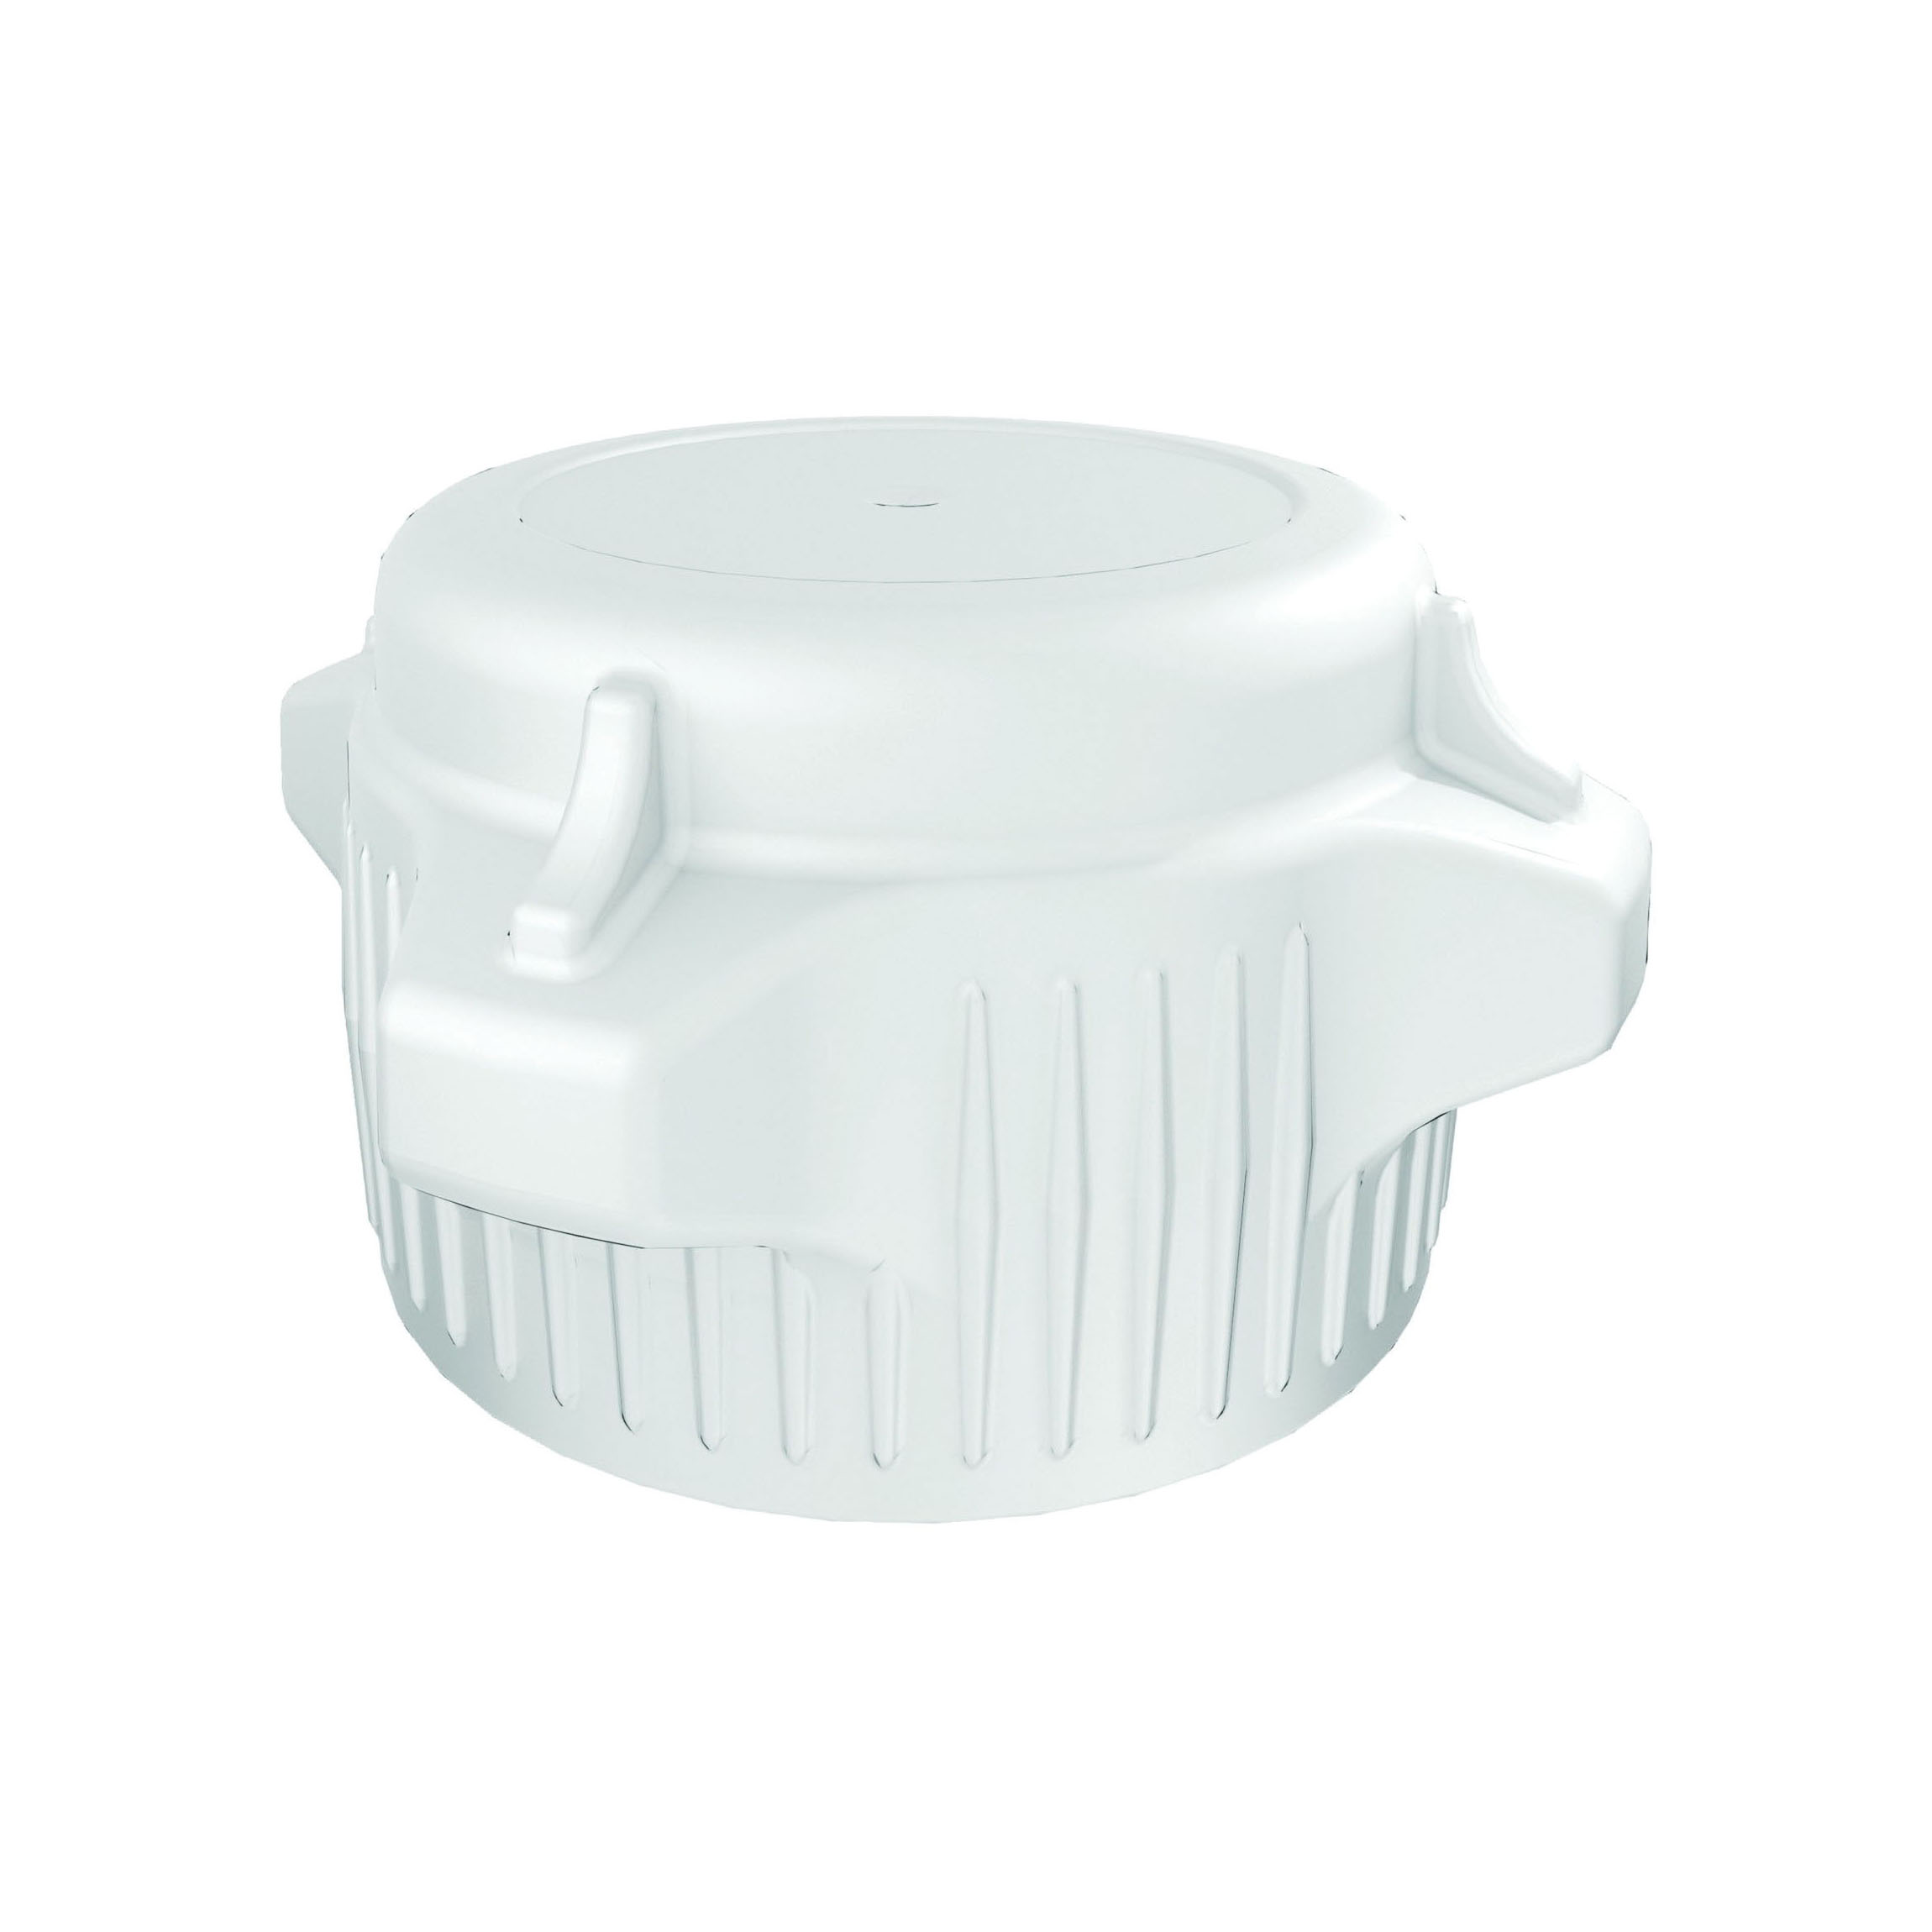 Justrite® 12852 Closed Top Carboy Cap, 3 in Dia x 53 mm Mouth, Polypropylene, White